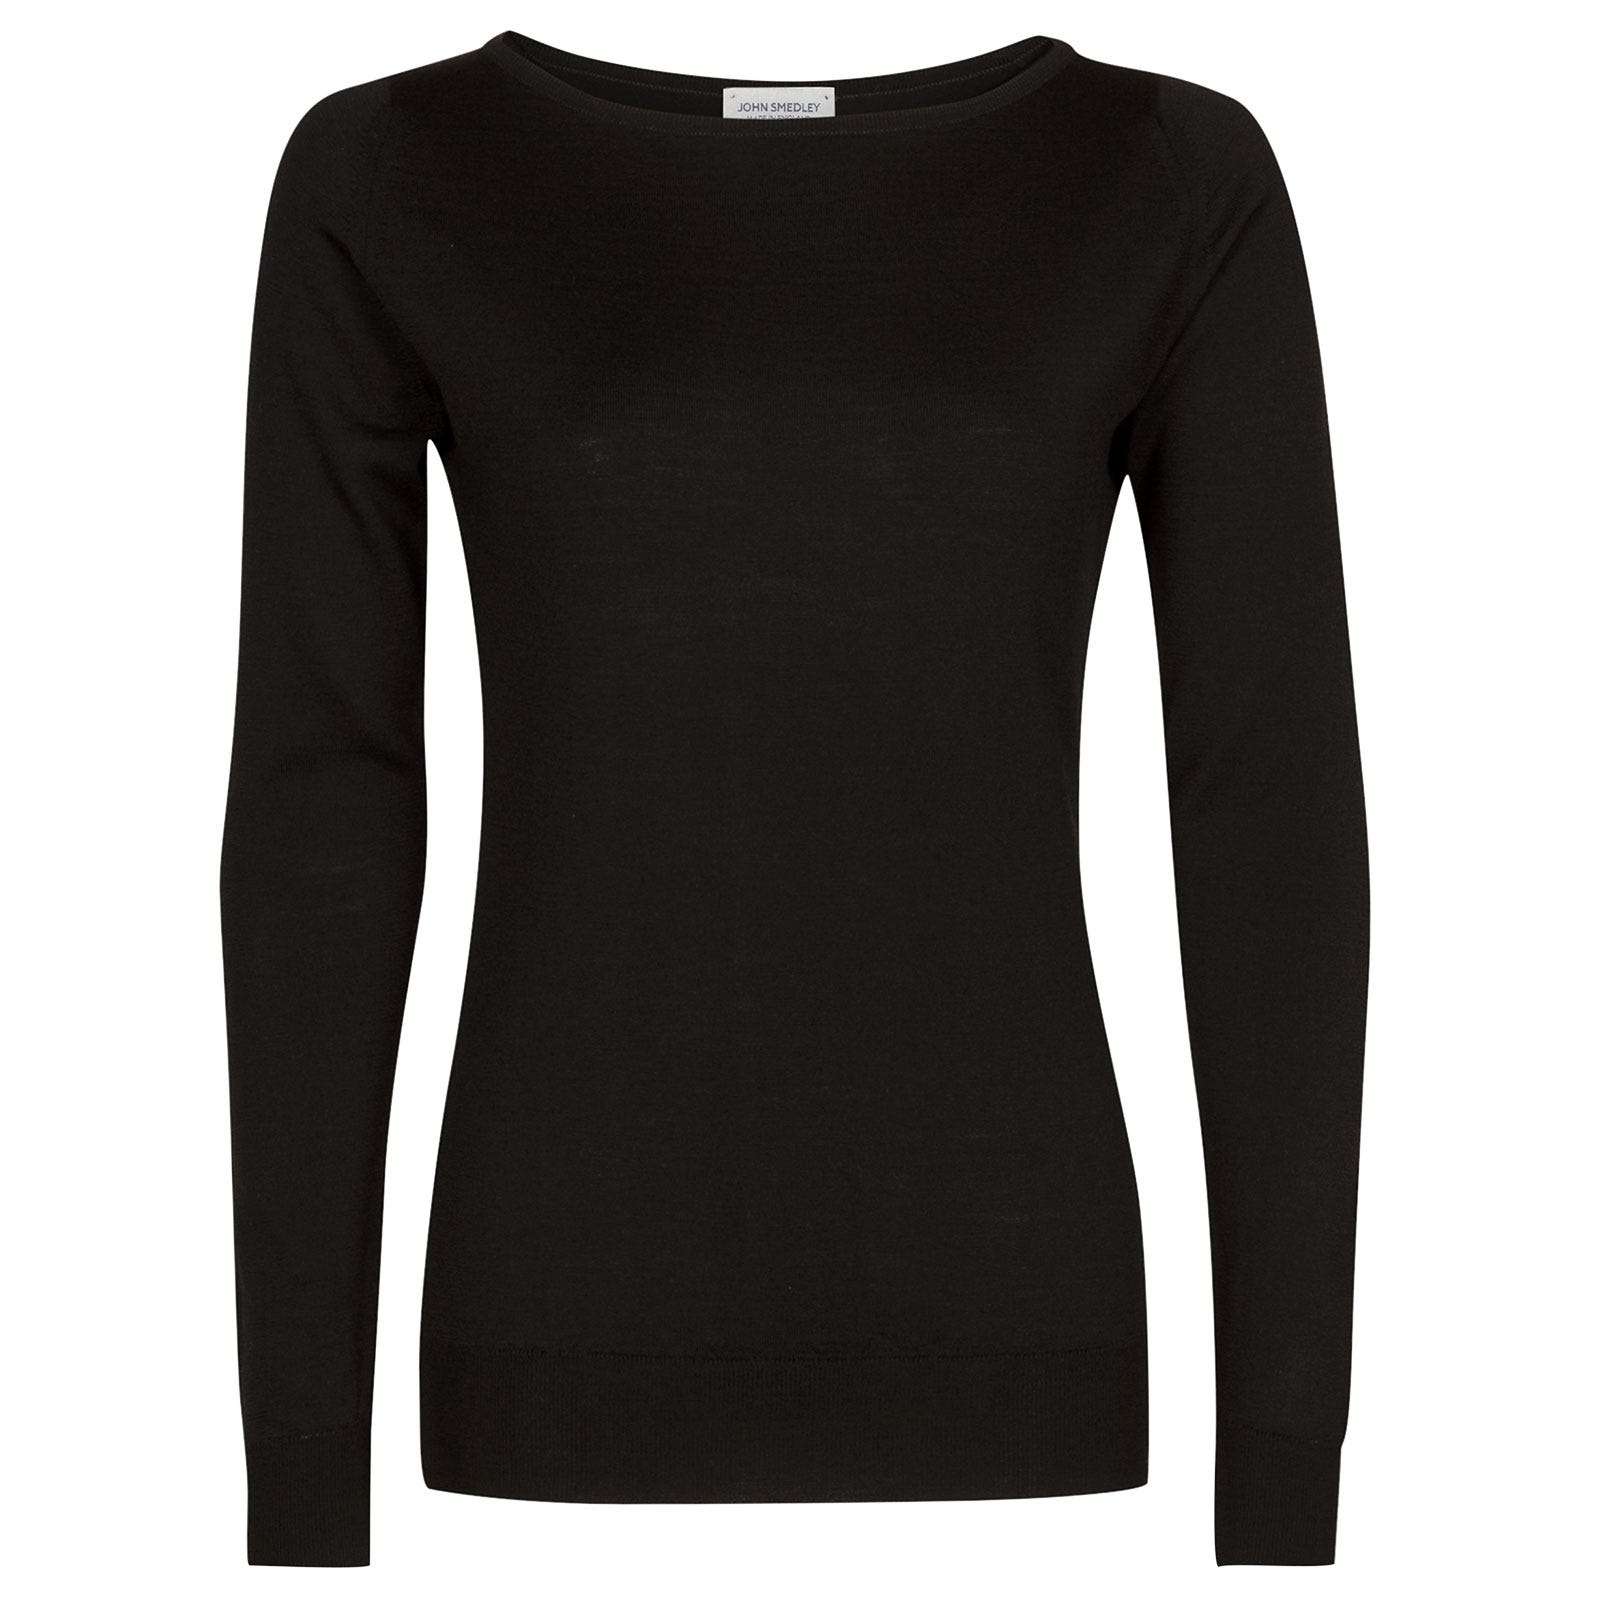 John Smedley susan Merino Wool Sweater in Black-S